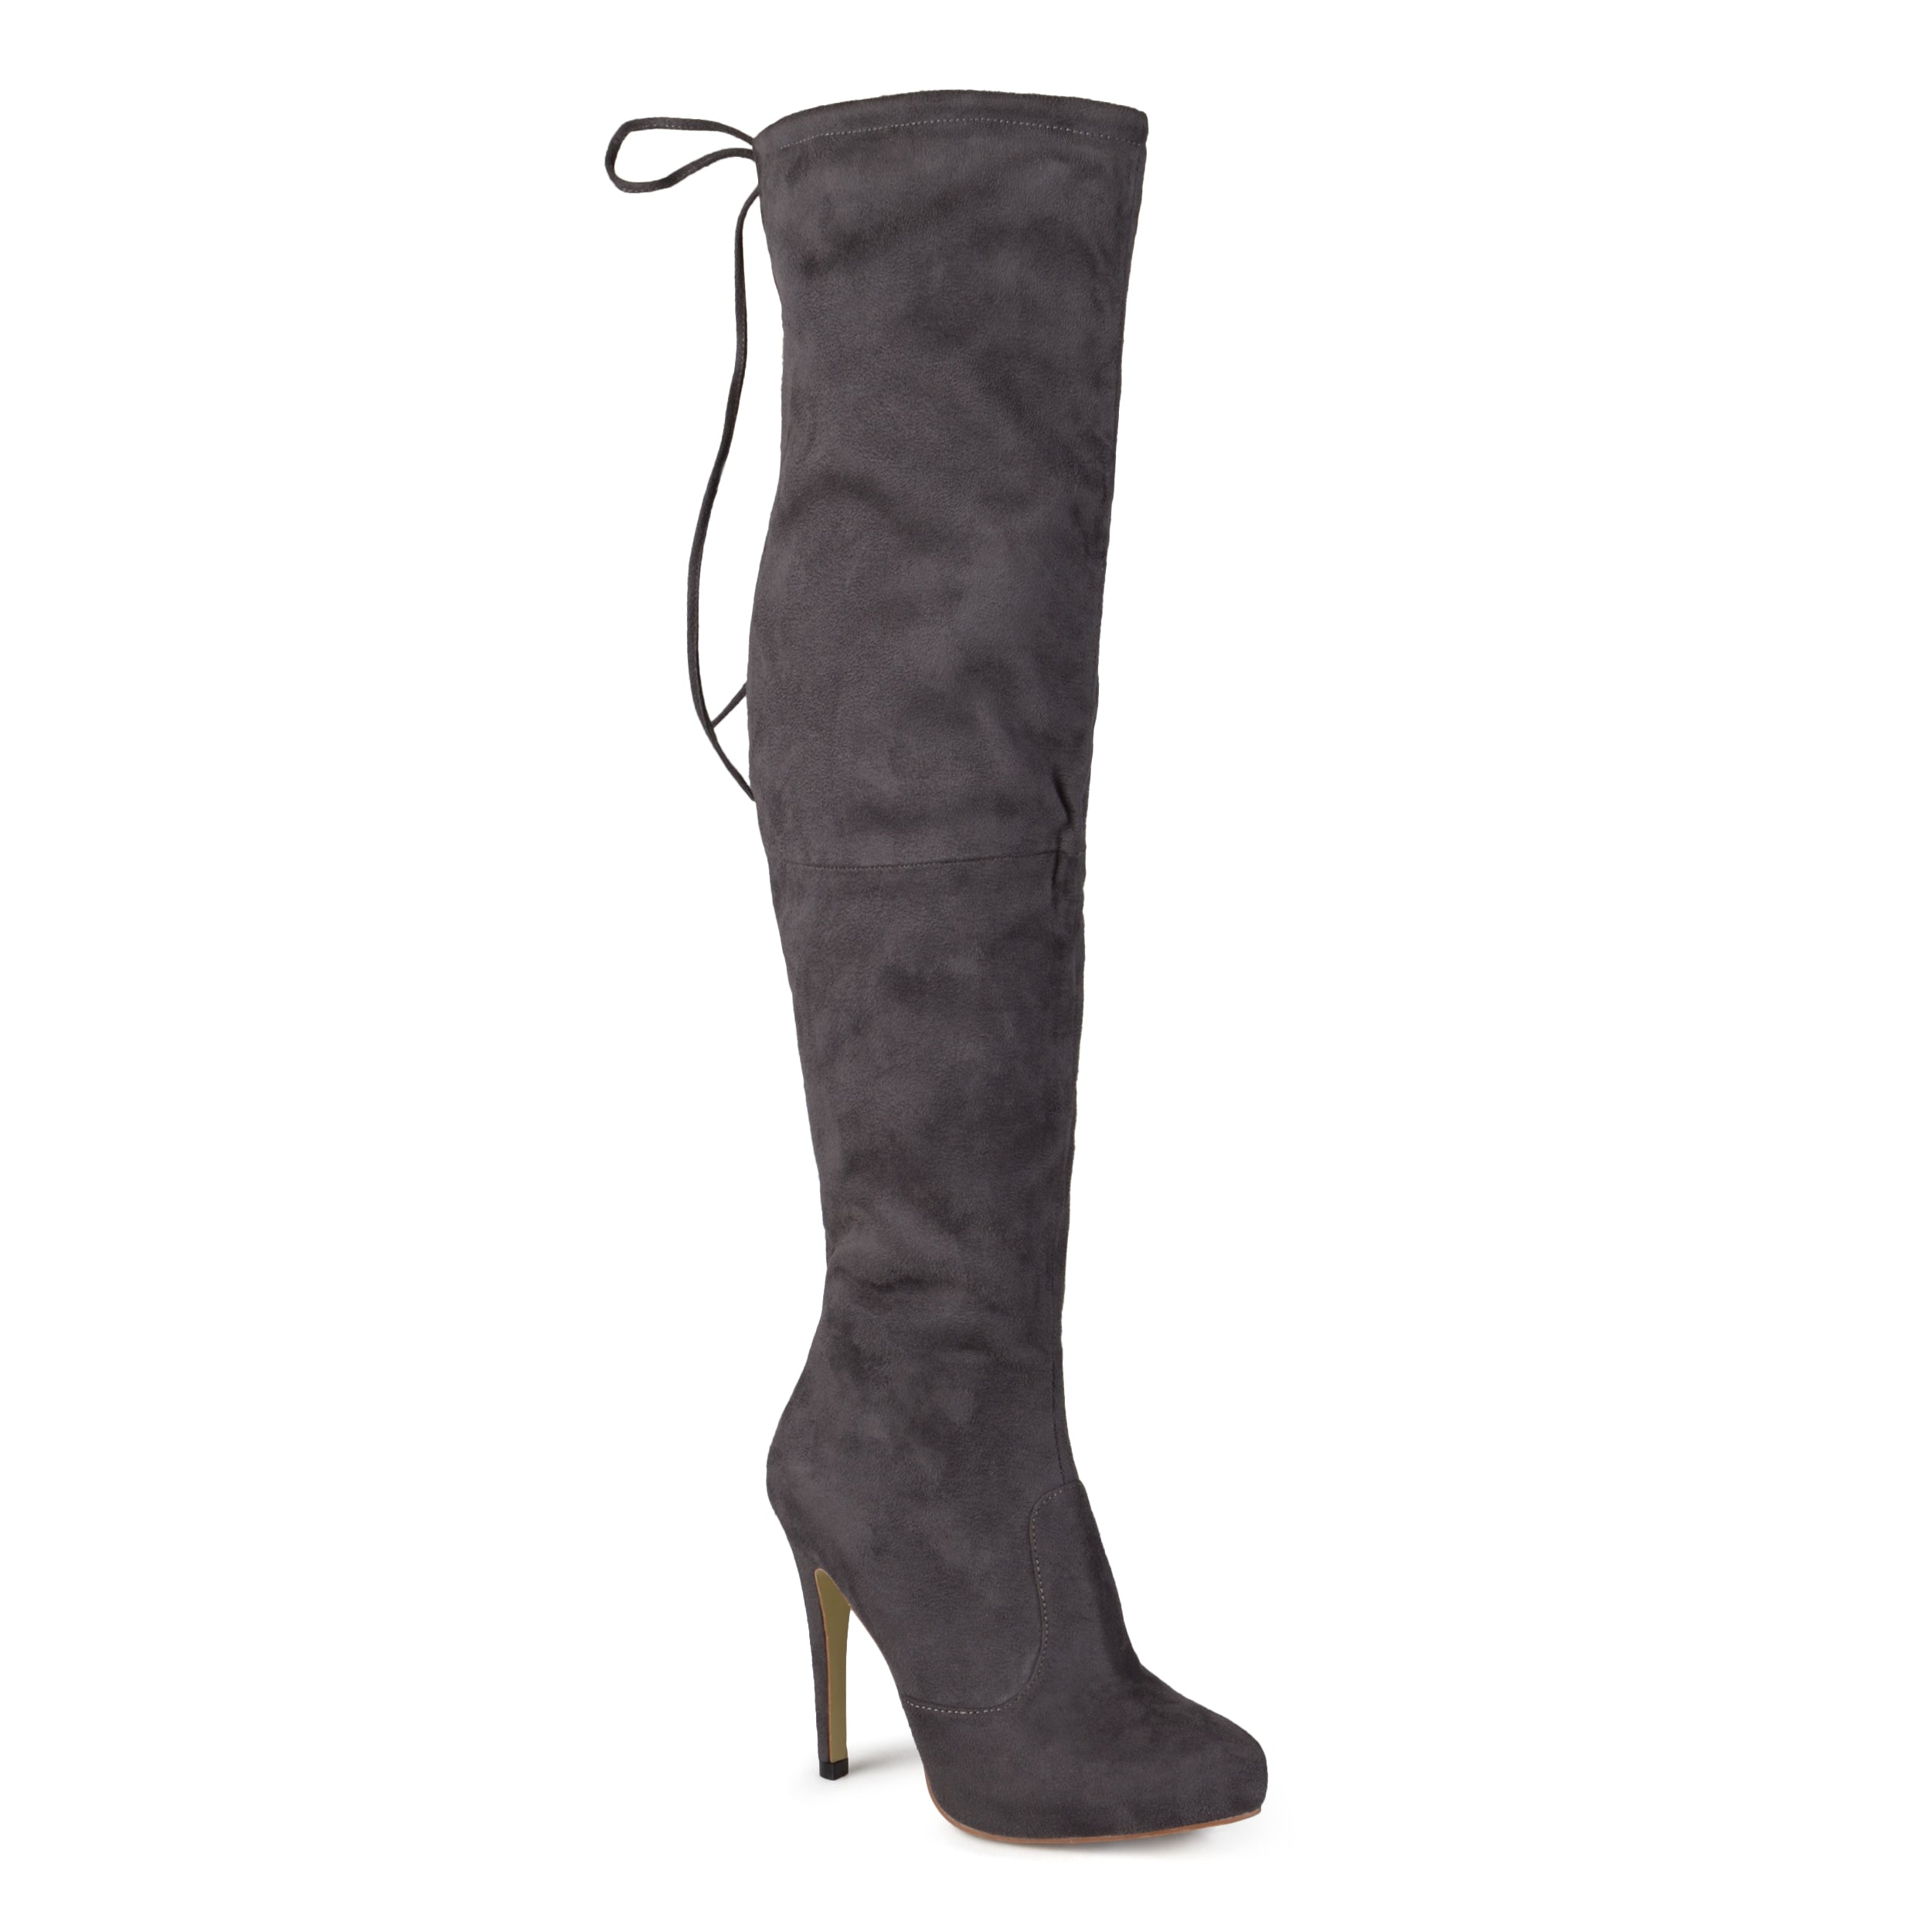 9303ae401fe Womens Wide Calf High Heel Over-the-knee Boots